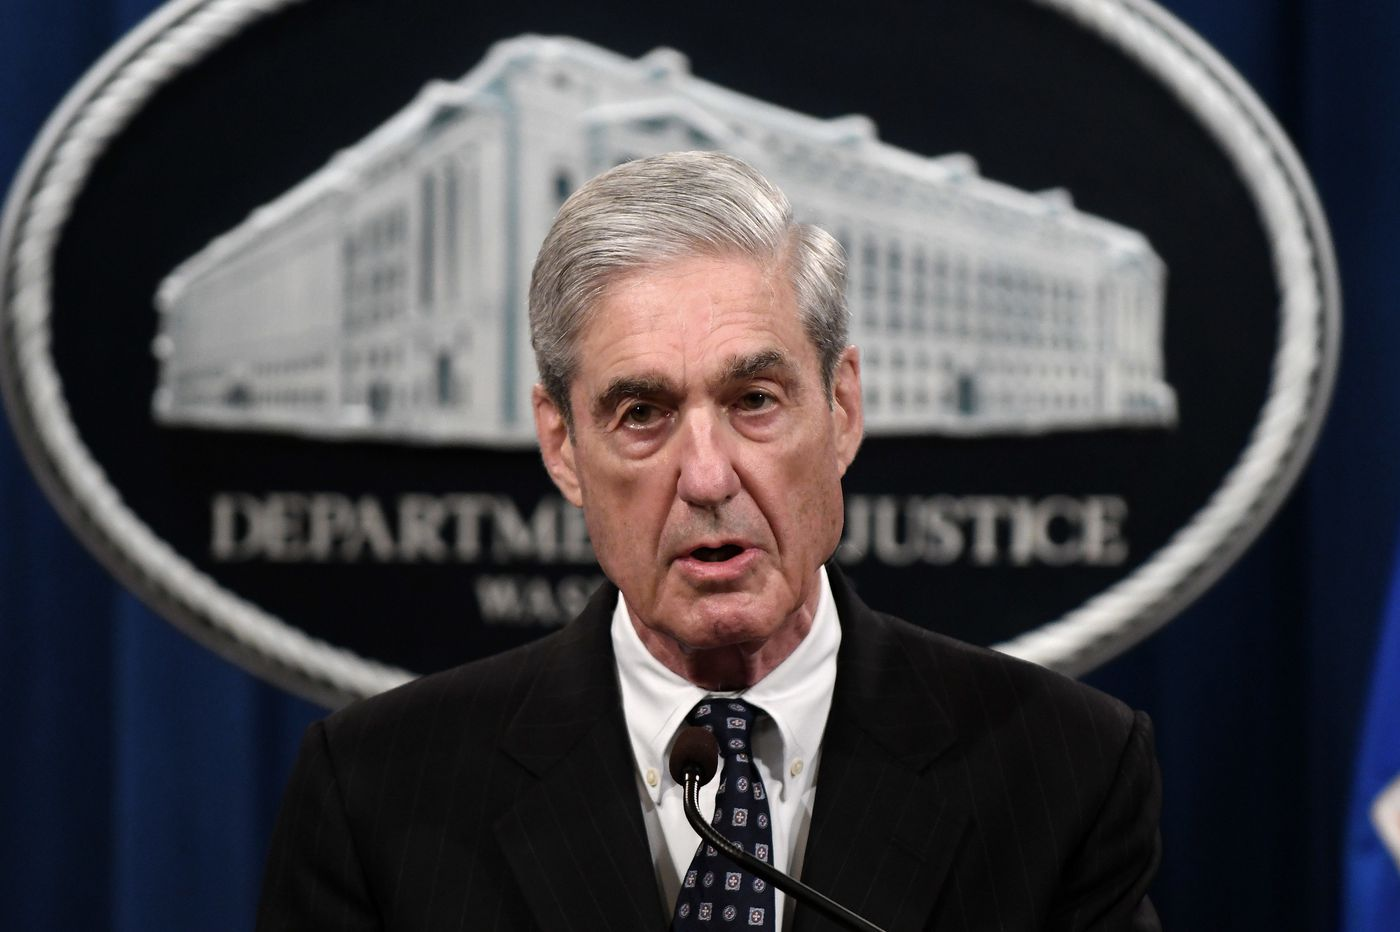 Mueller breaks his silence on Russian investigation